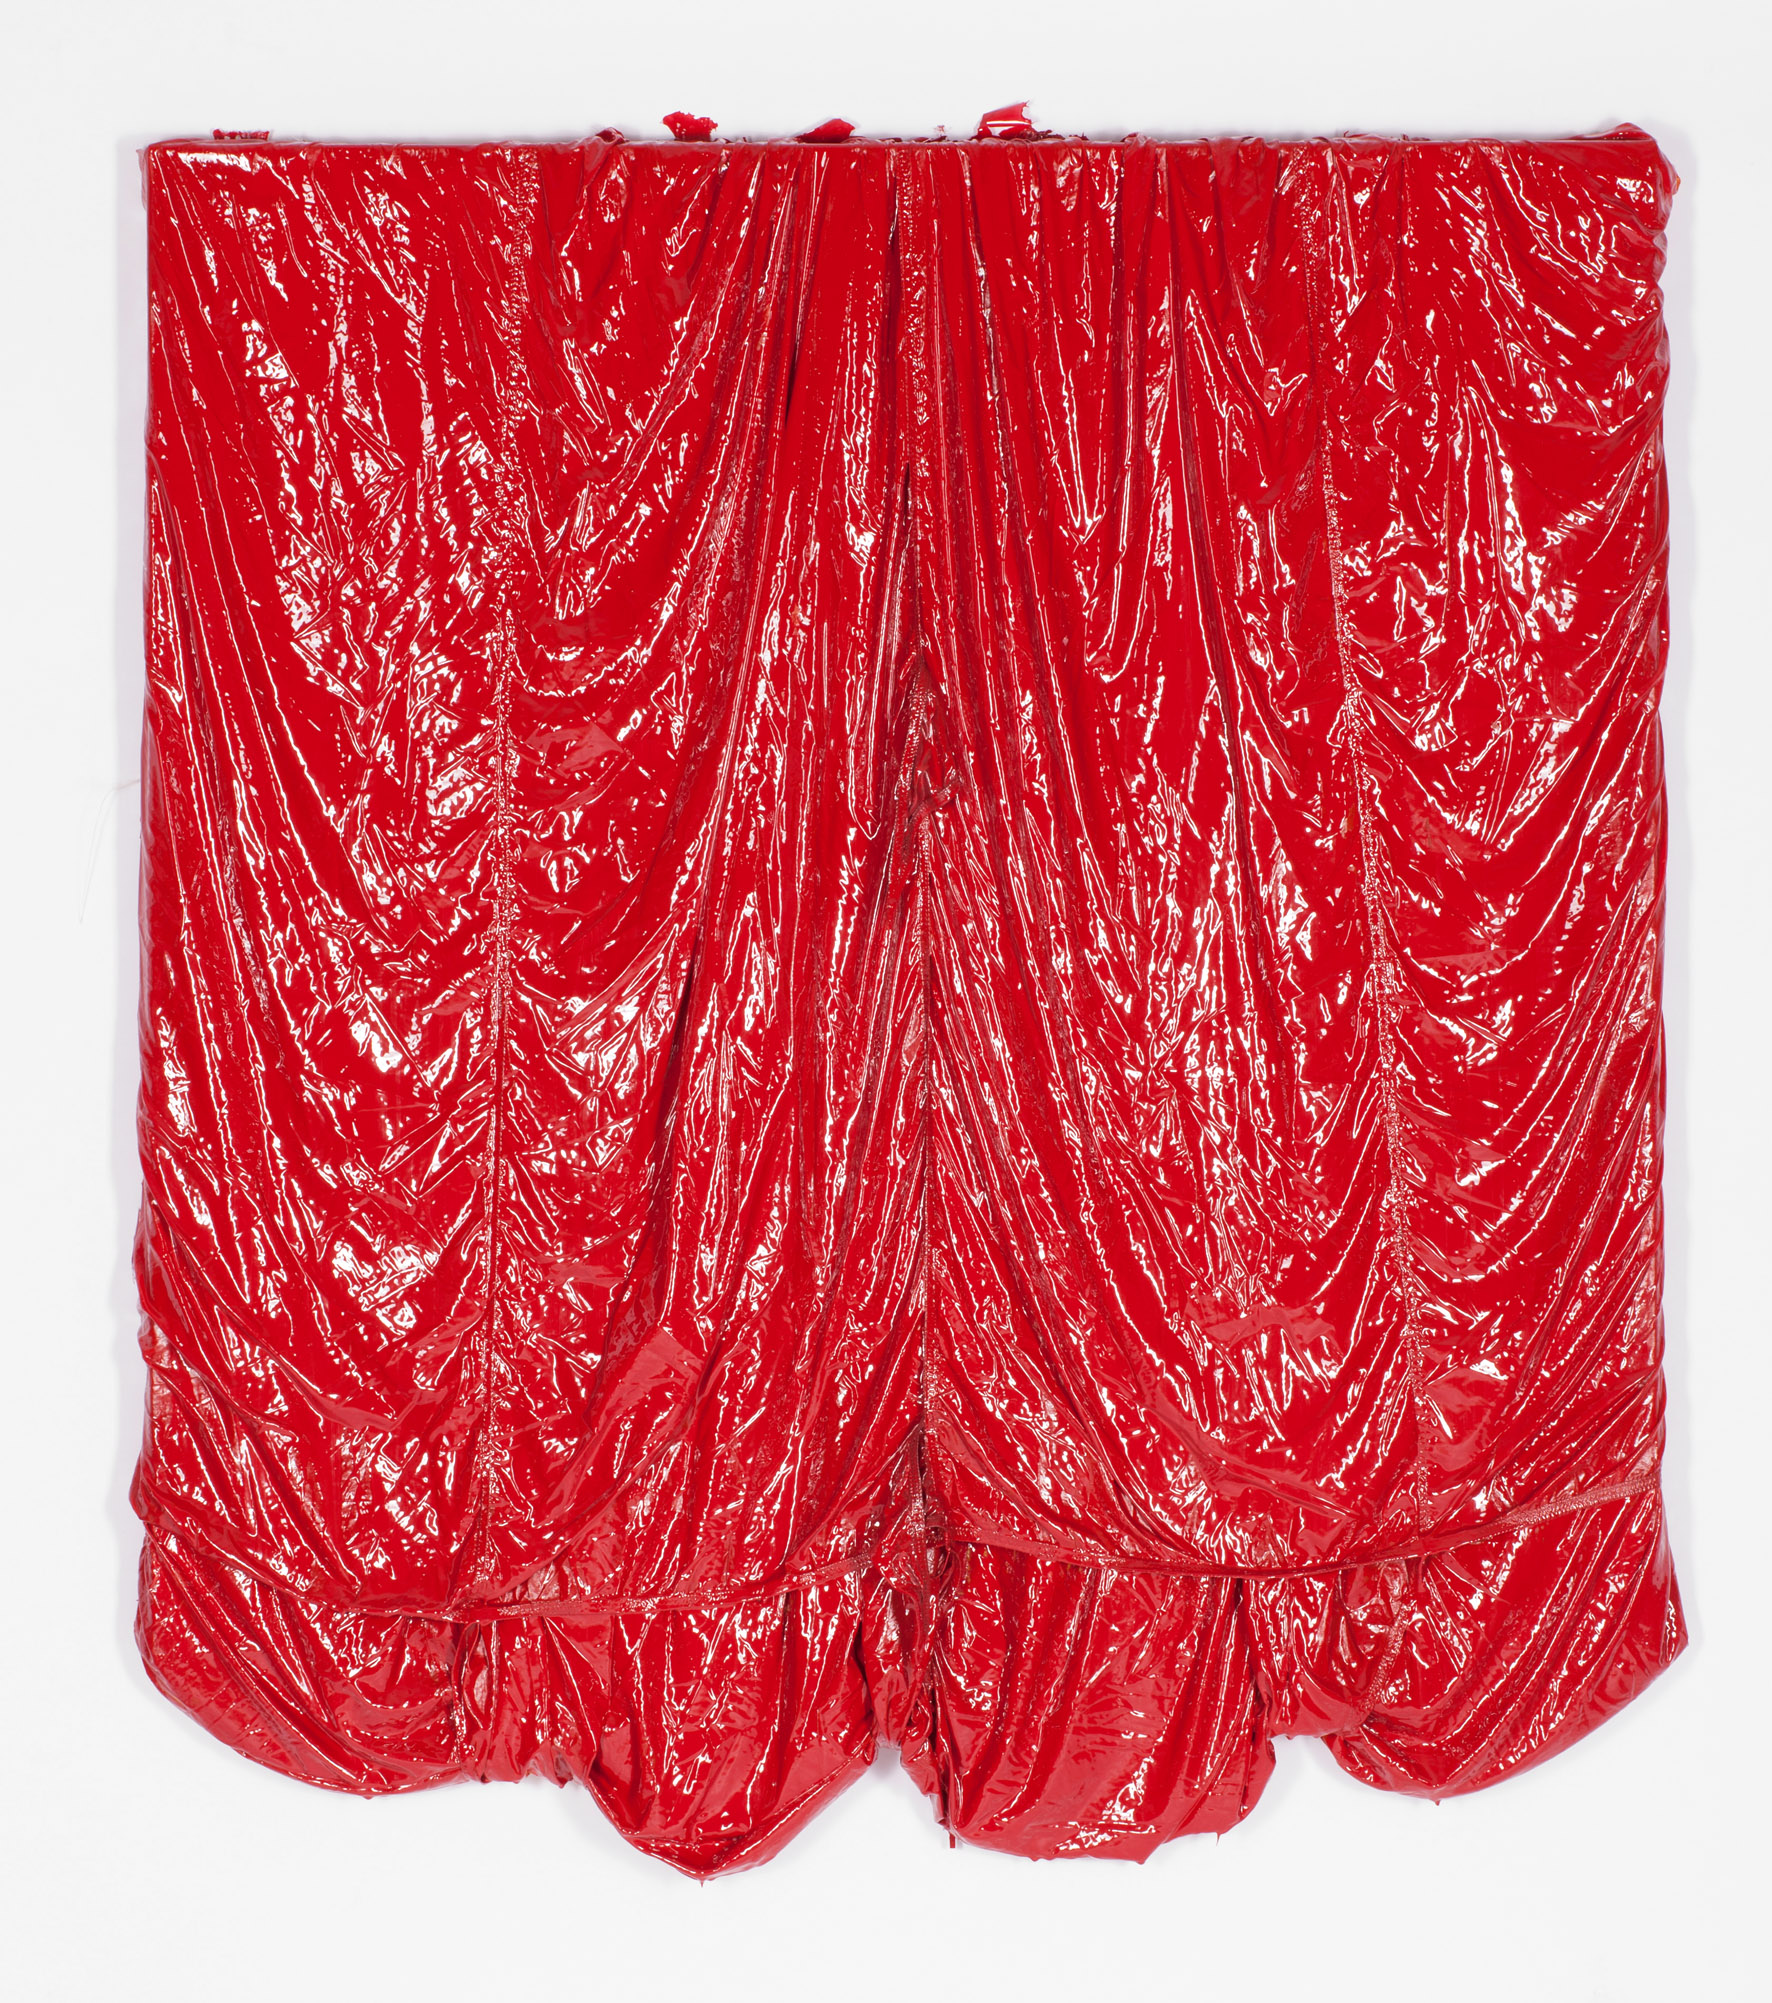 Parachute Painting (red) #100, 2017